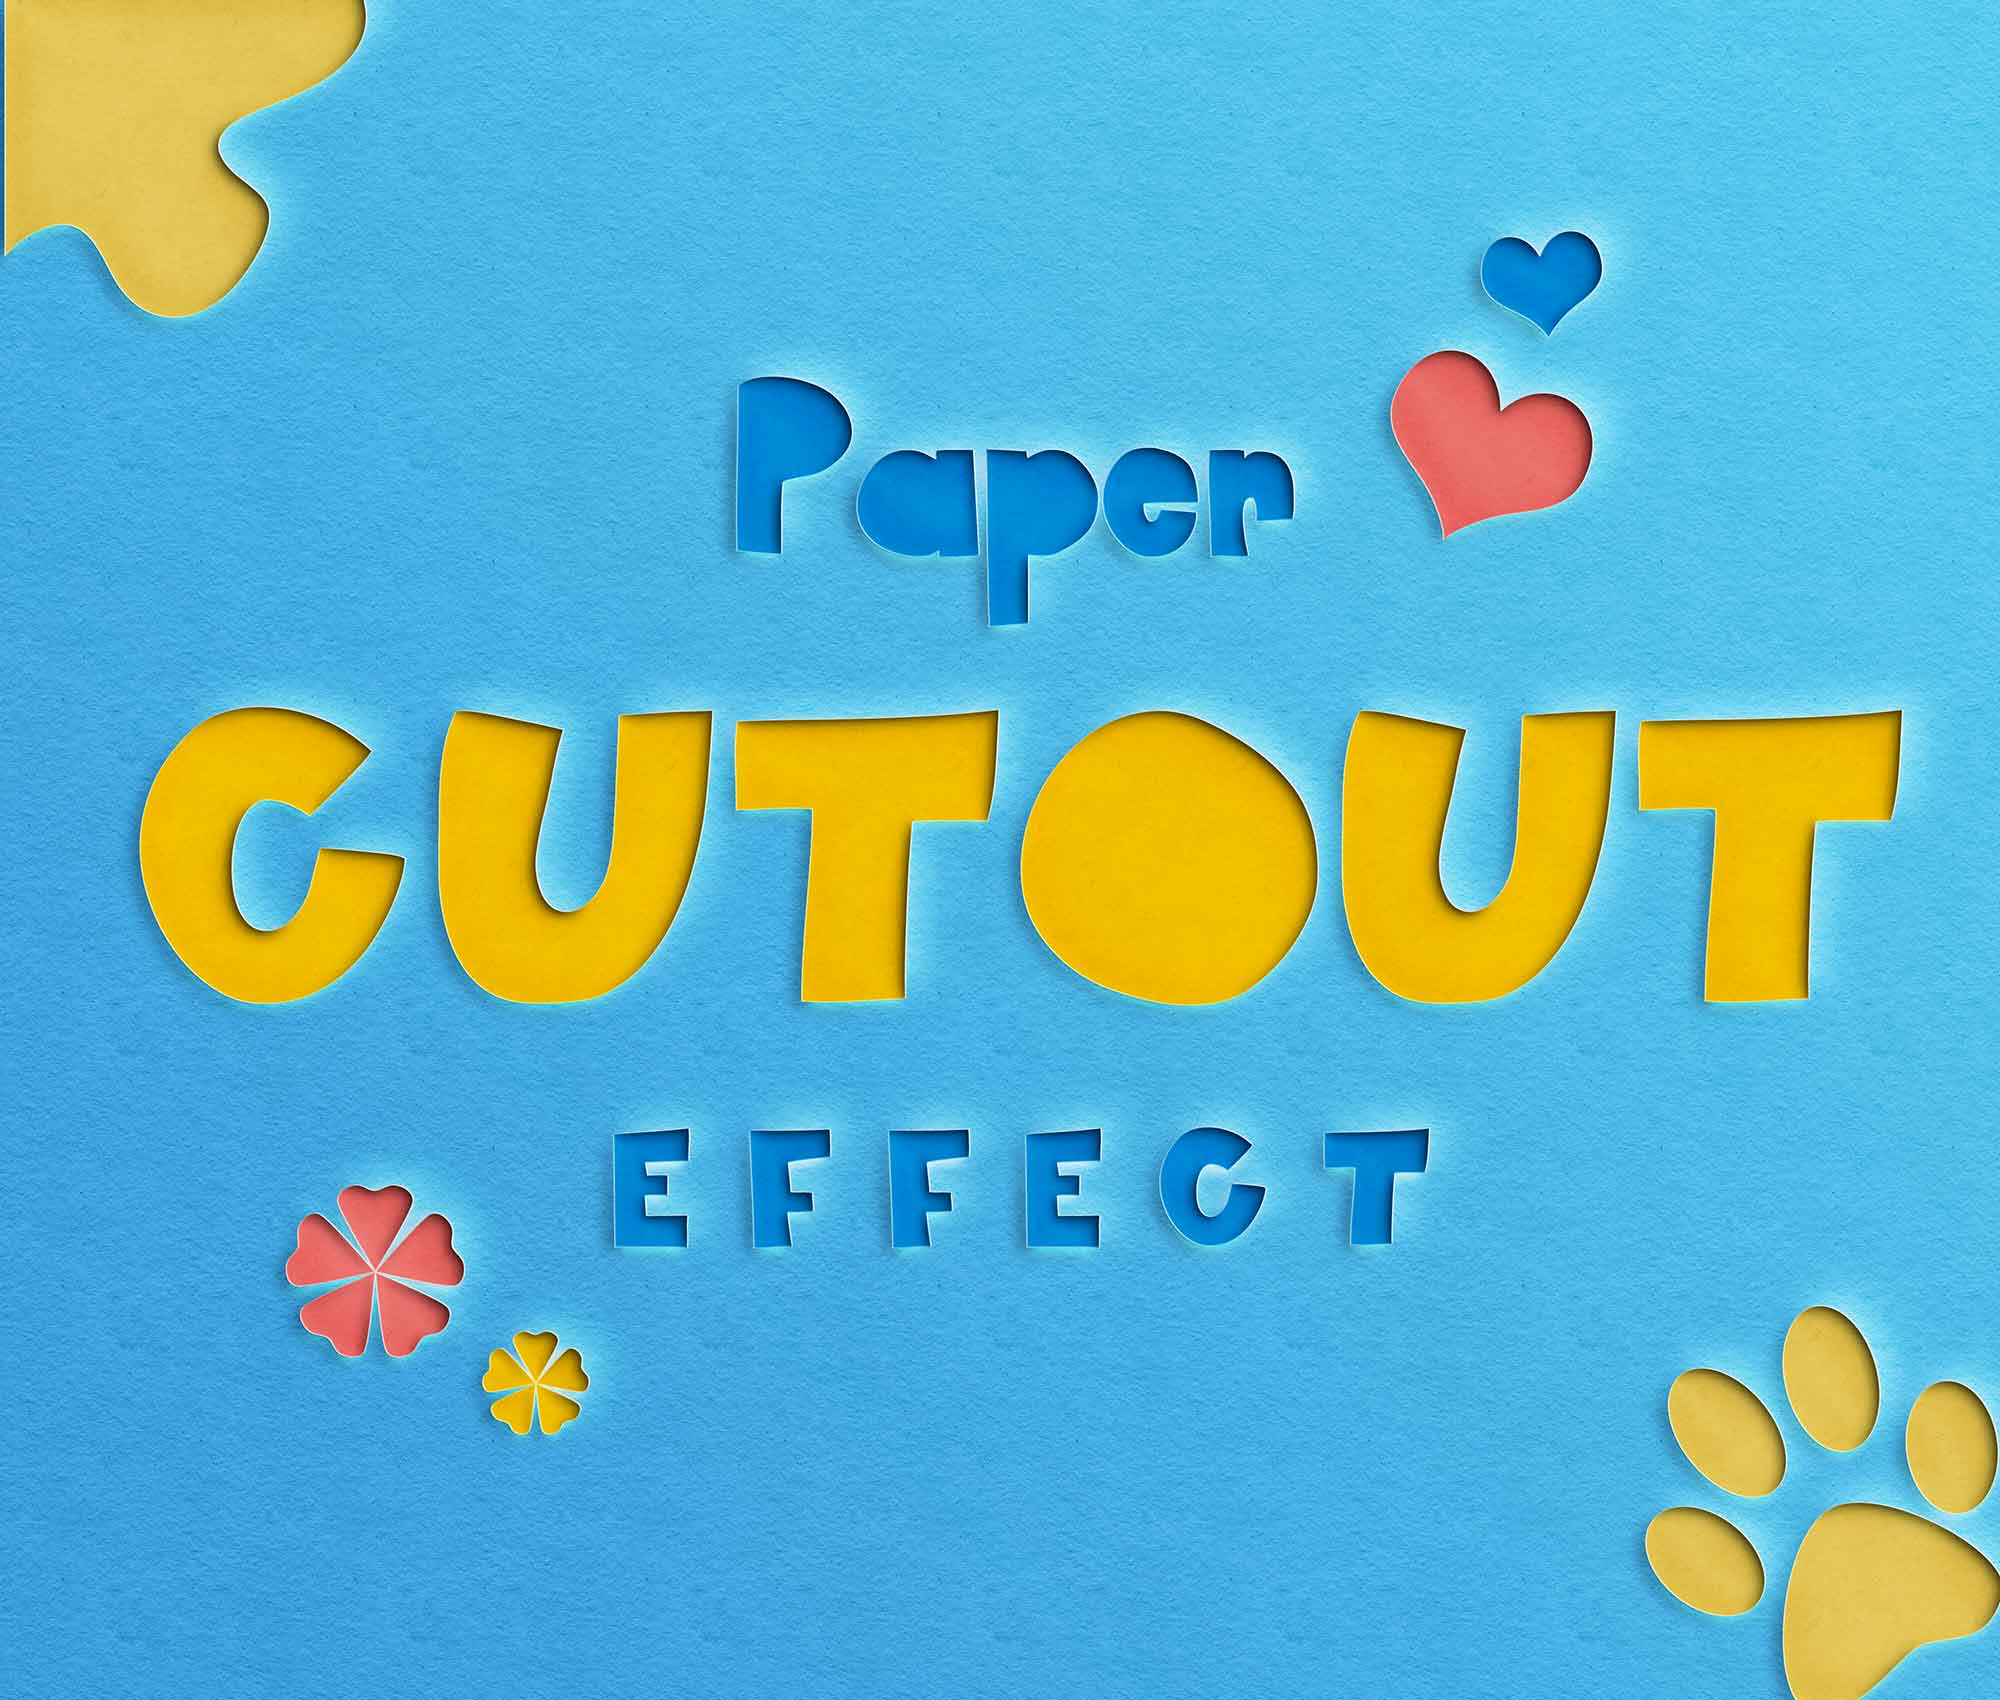 Paper Cut-Out Text Effect